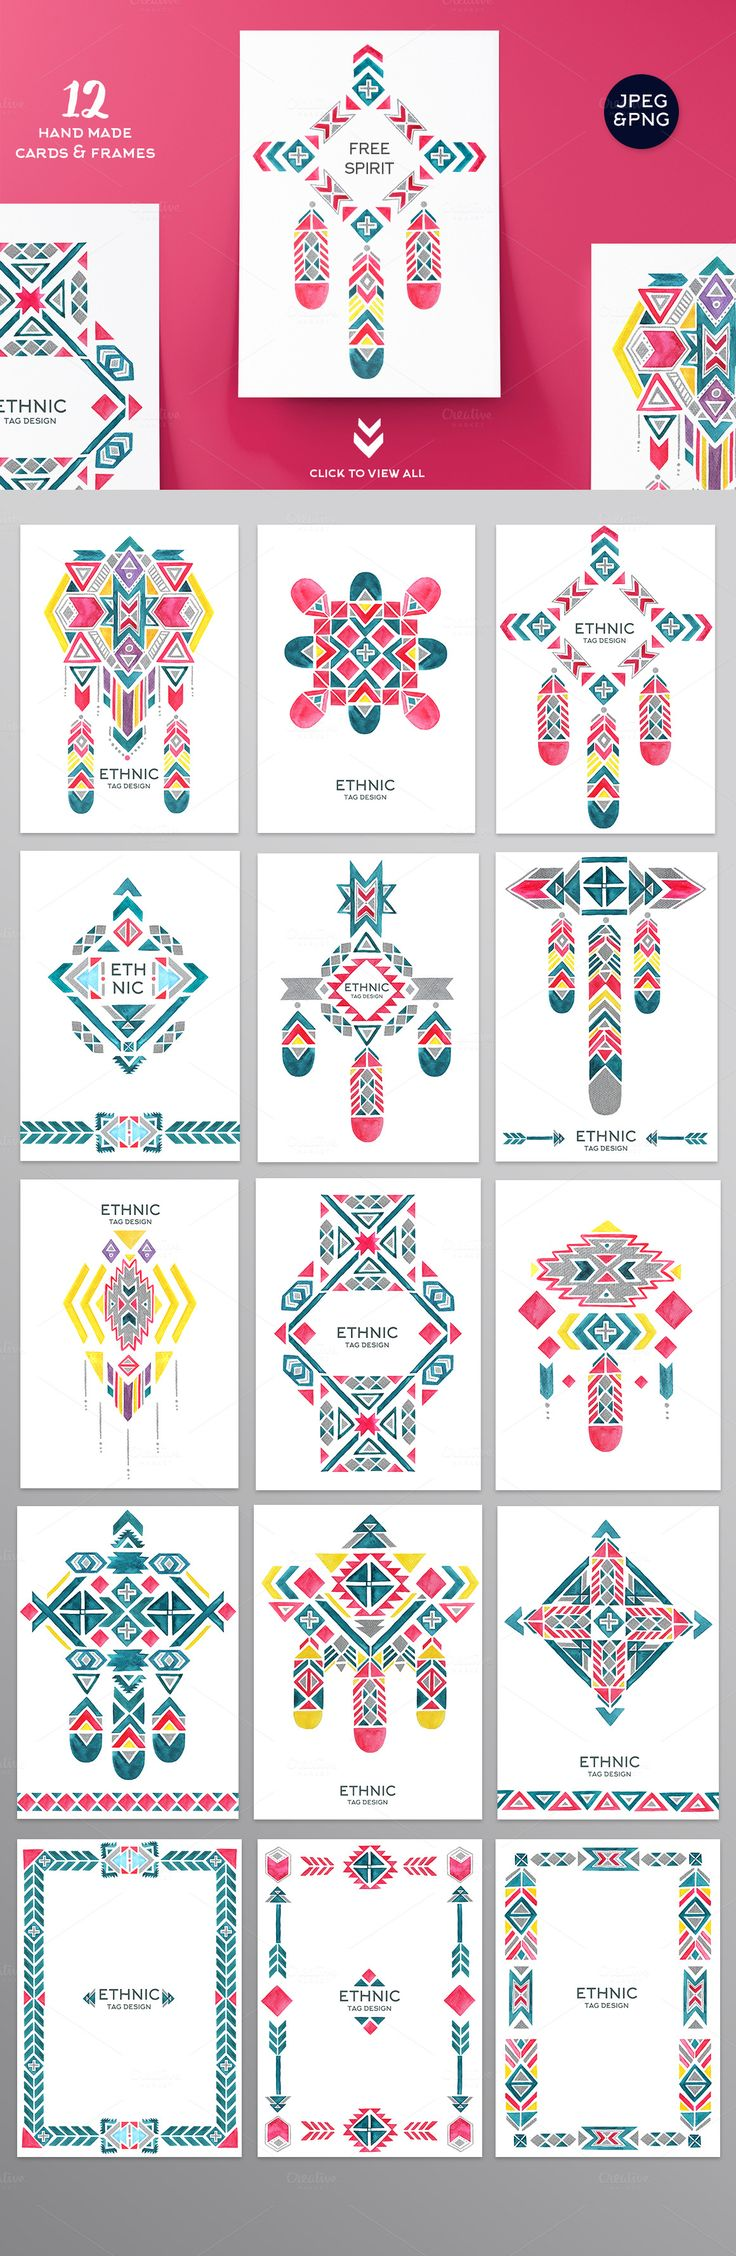 Watercolor Ethnic Set (DIY PACK) by SoNice on Creative Market